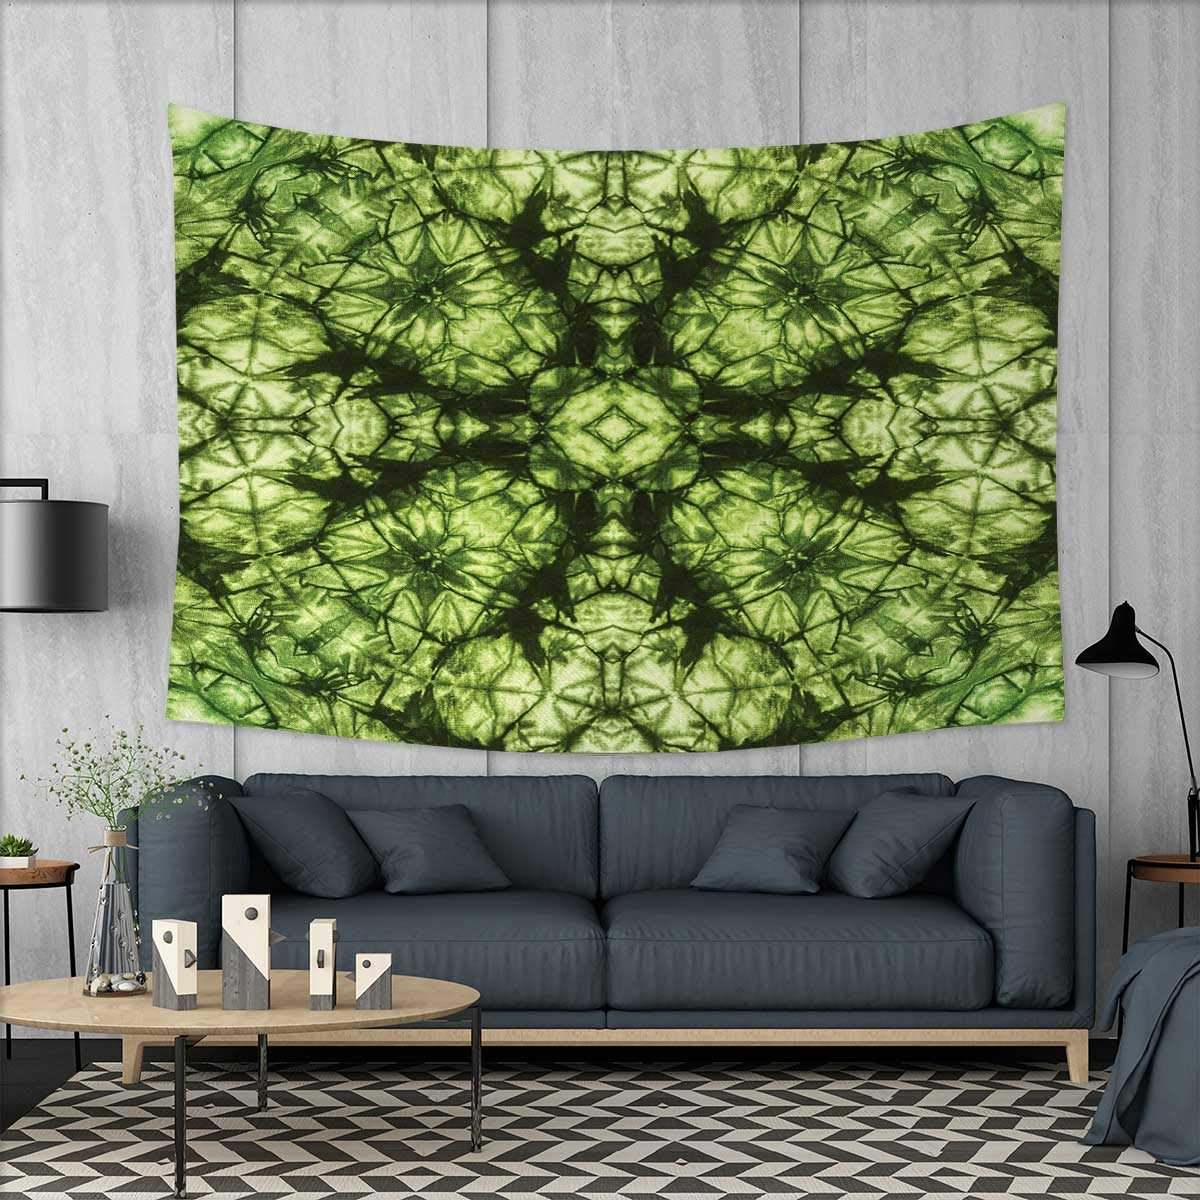 Anniutwo Abstract Dorm Decor Weird Abstract Original Pattern with Fold Form Free Artisan Rattling Surreal Image Tapestry Table Cover Bedspread Beach Towel W71 x L60 (inch) Green